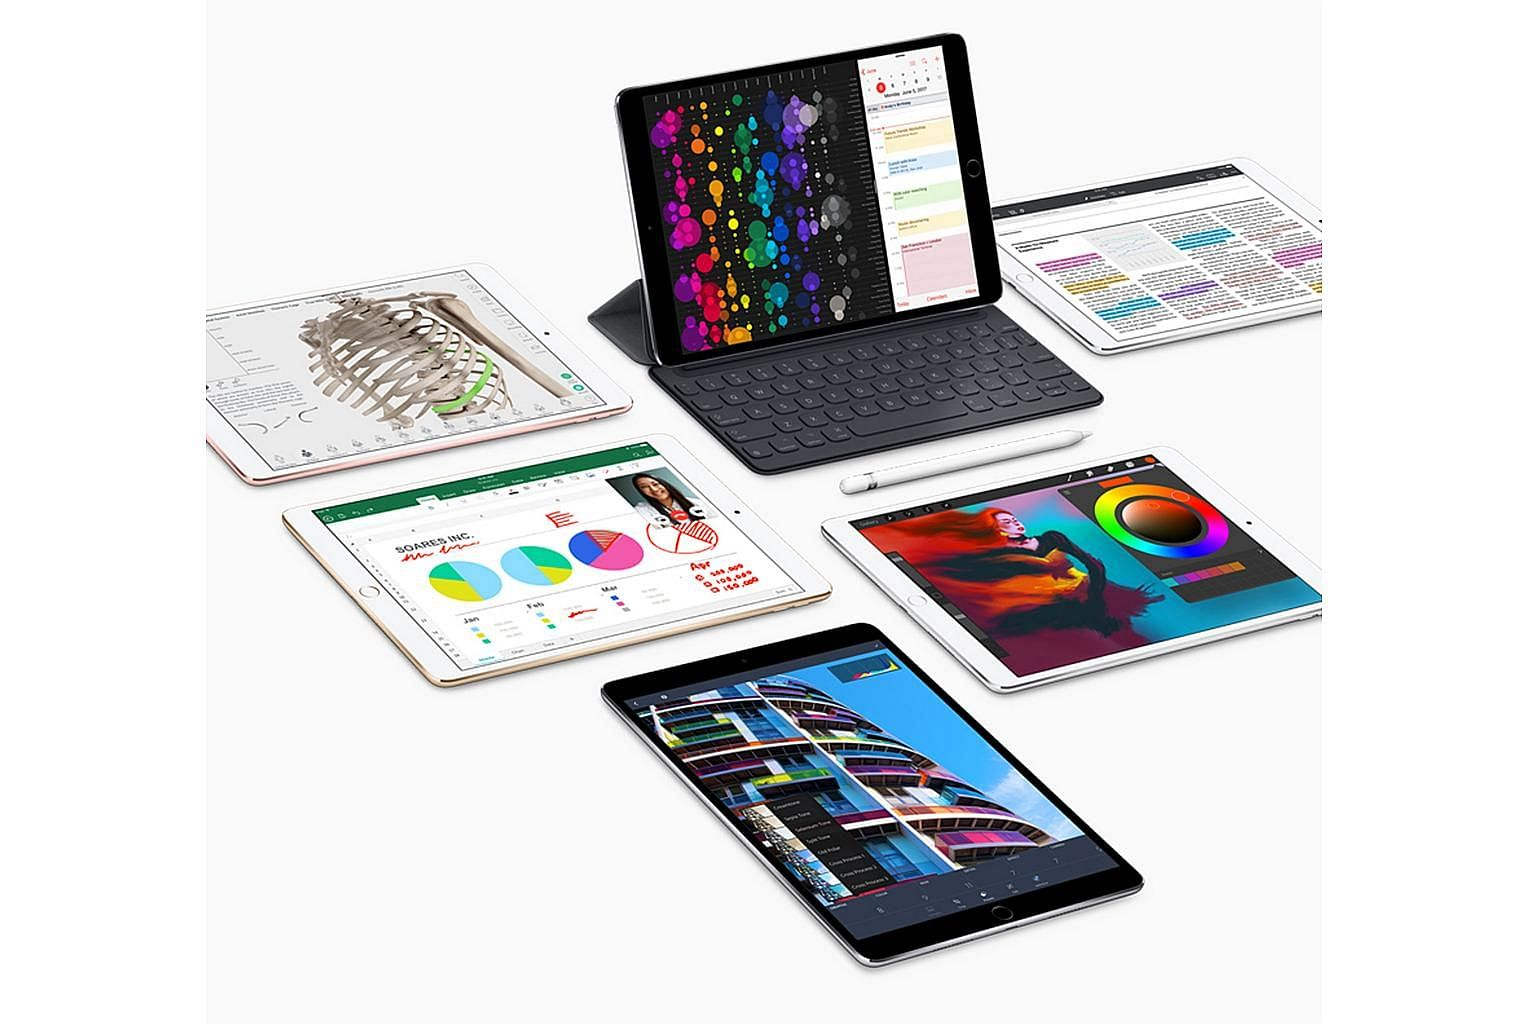 Whether it is swiping, playing games or sketching on ProCreate, screen response on the 10.5-inch iPad Pro is much smoother than previous iPads.